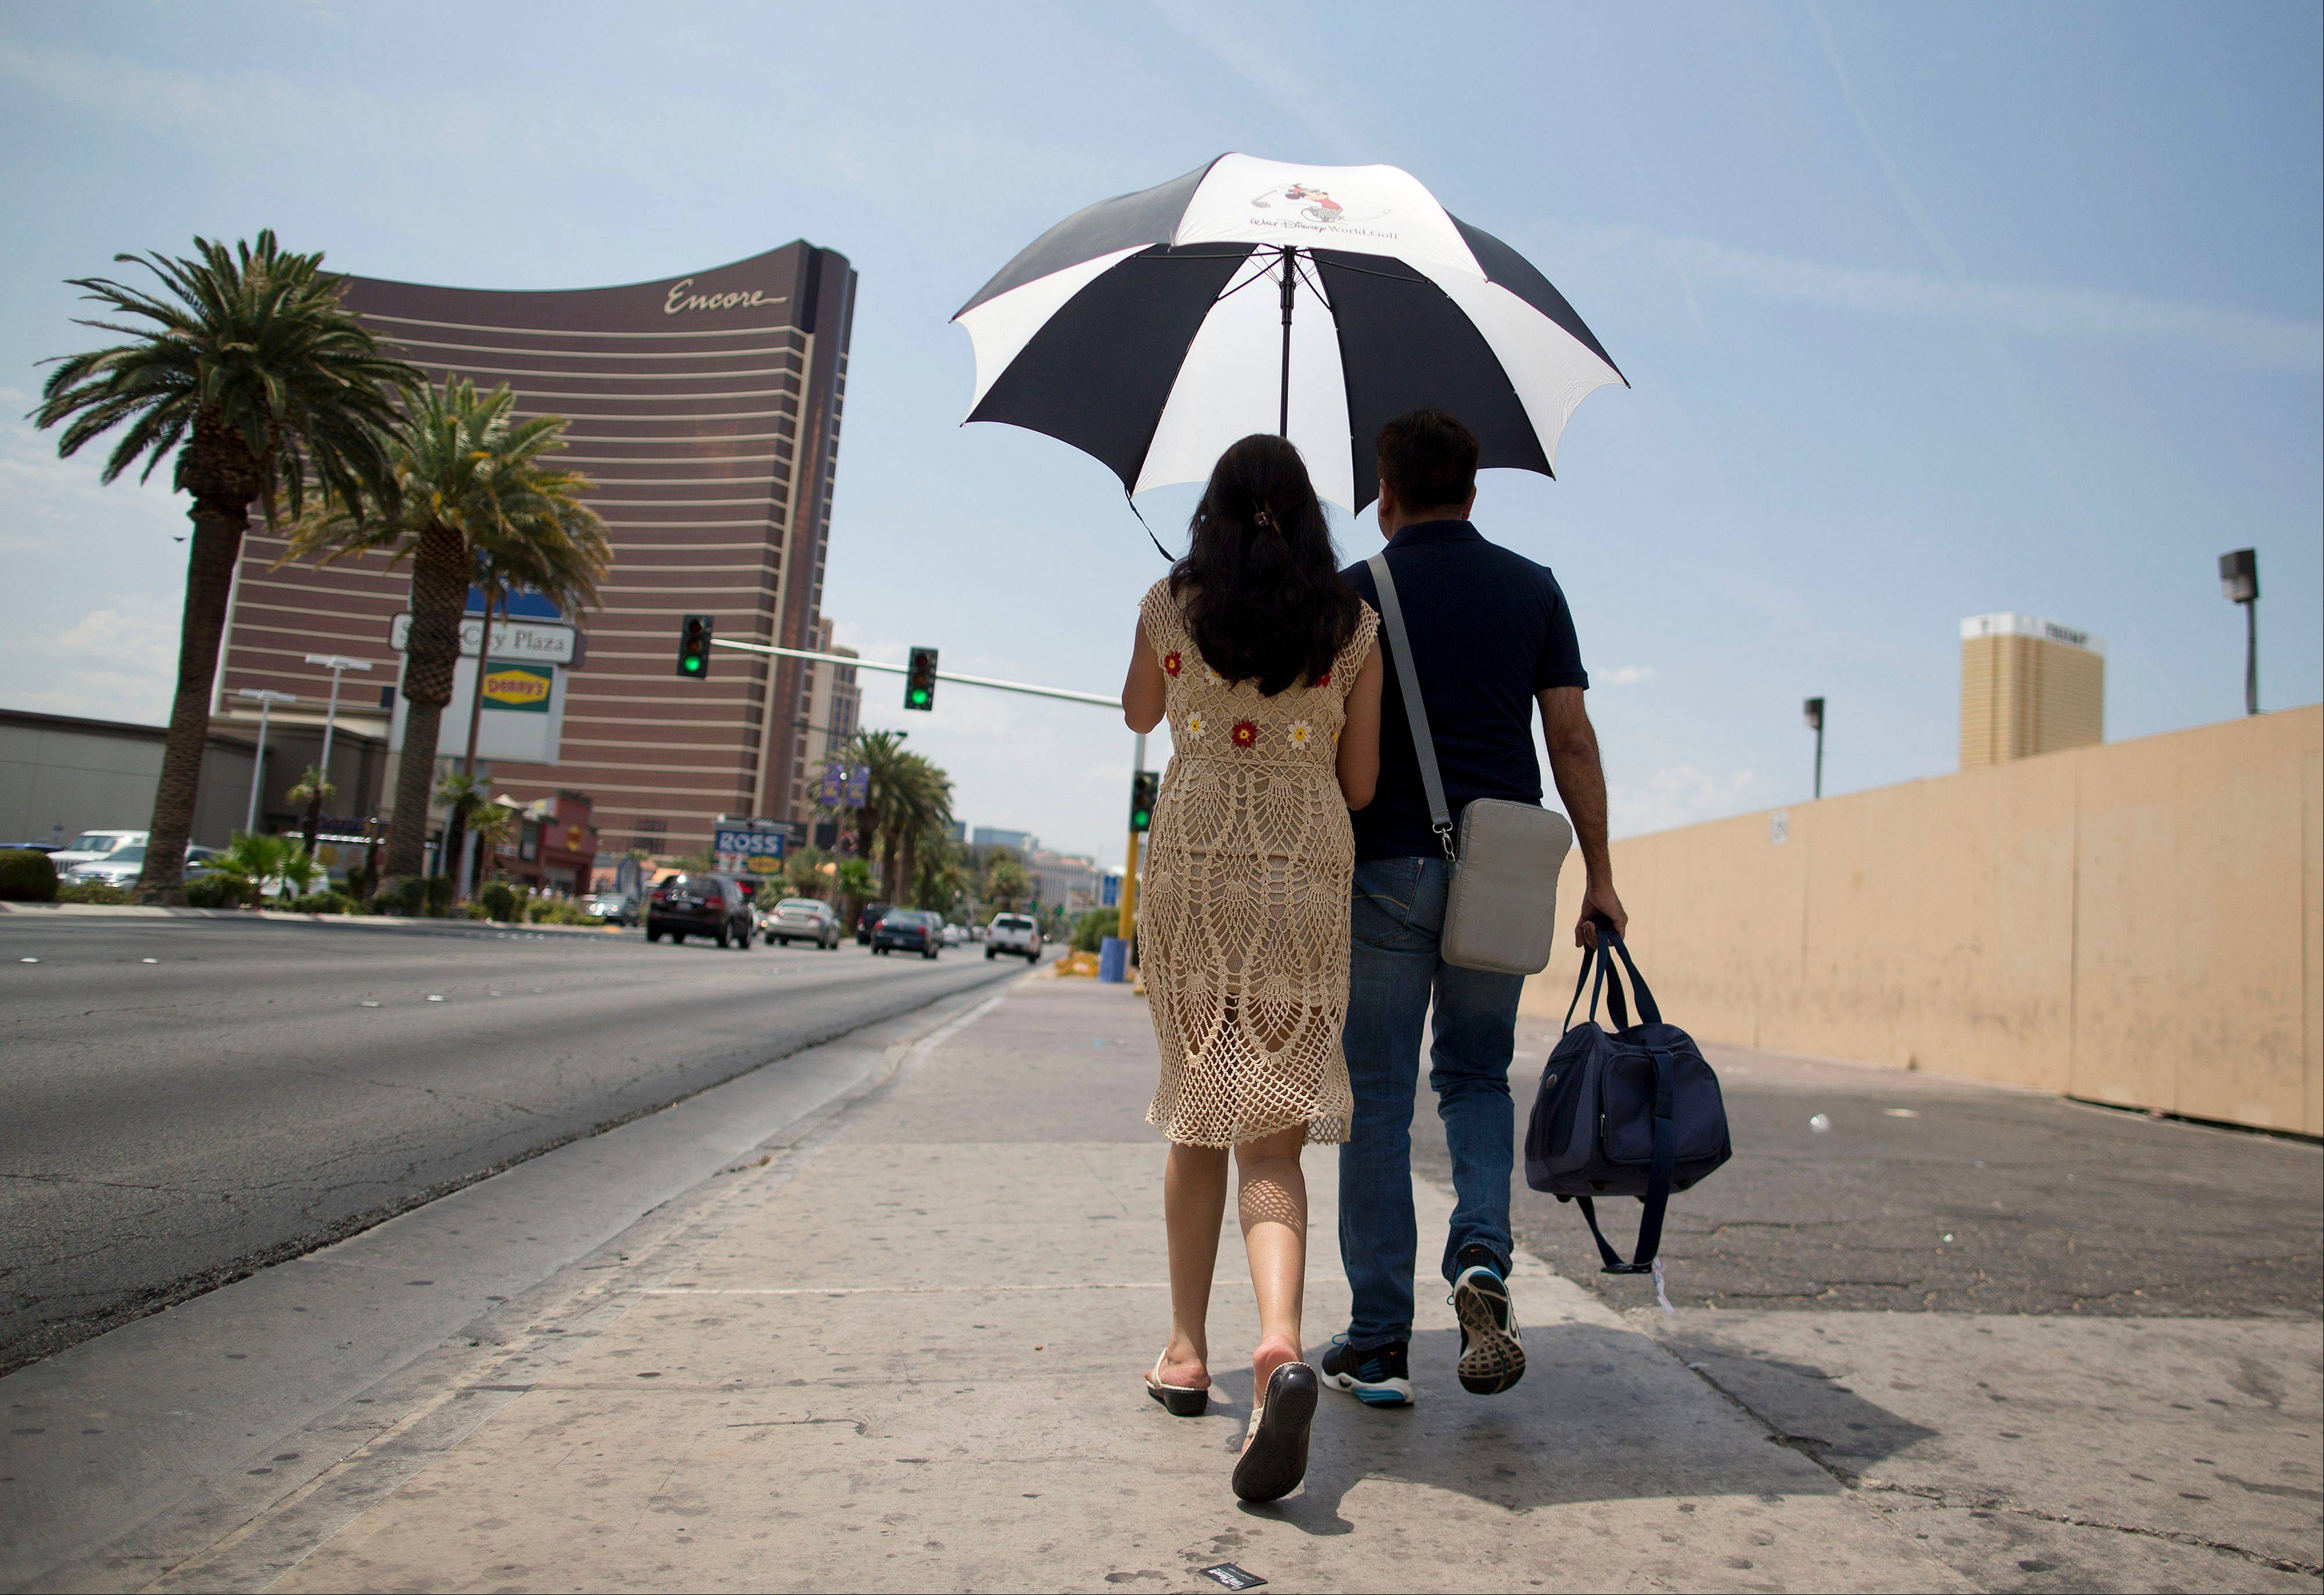 Under the shade of an umbrella with temperatures already in triple digits by mid morning, tourists walk north along Las Vegas Boulevard toward The Strip in Las Vegas. Temperatures were on the rise again after the city reported a record overnight low of 89 degrees Sunday and forecasters predicting a high of 116.